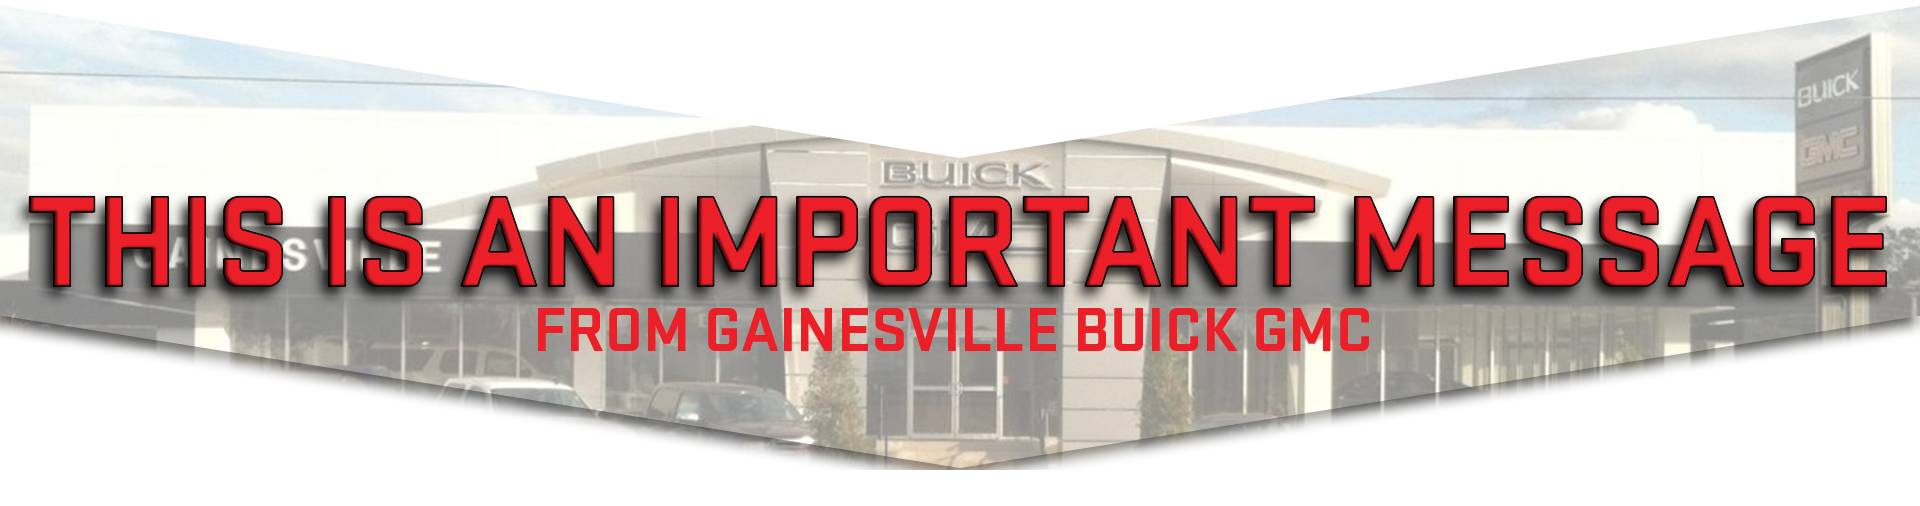 This is an important message - From Gainesville Buick GMC